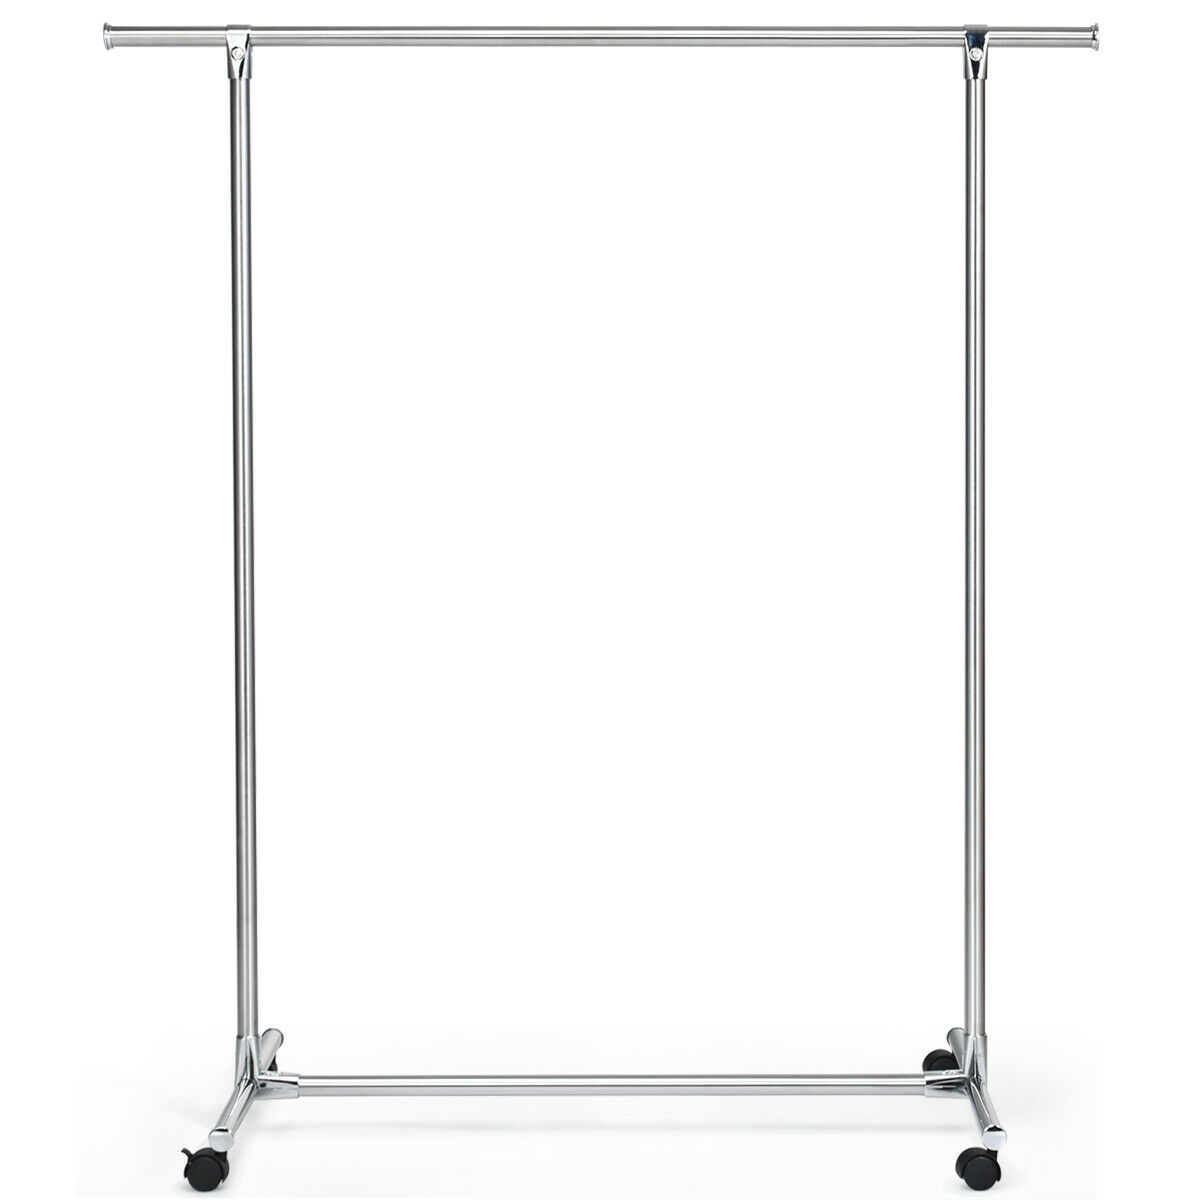 Clothing Rack Stainless Steel Heavy Duty Hanging Rail with Wheels